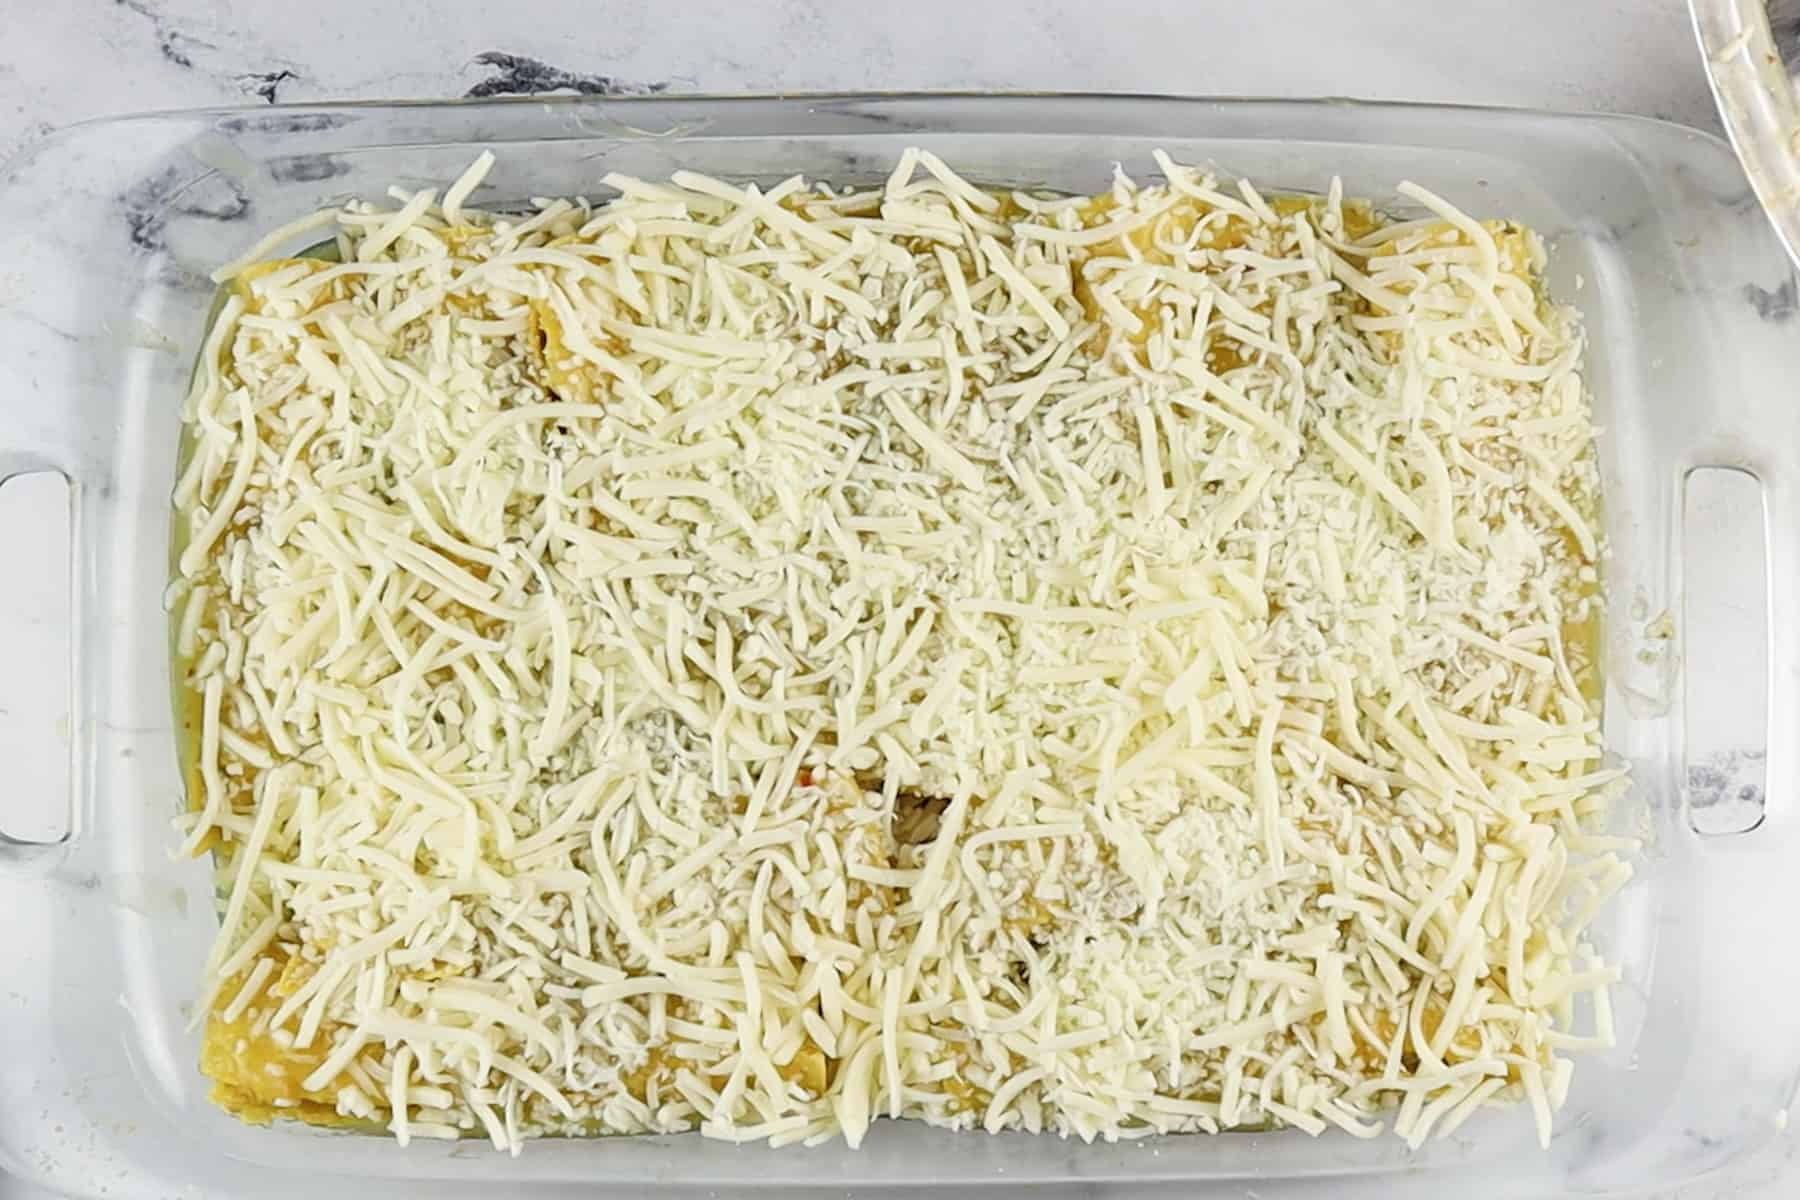 enchiladas in baking dish before baking and melting cheese